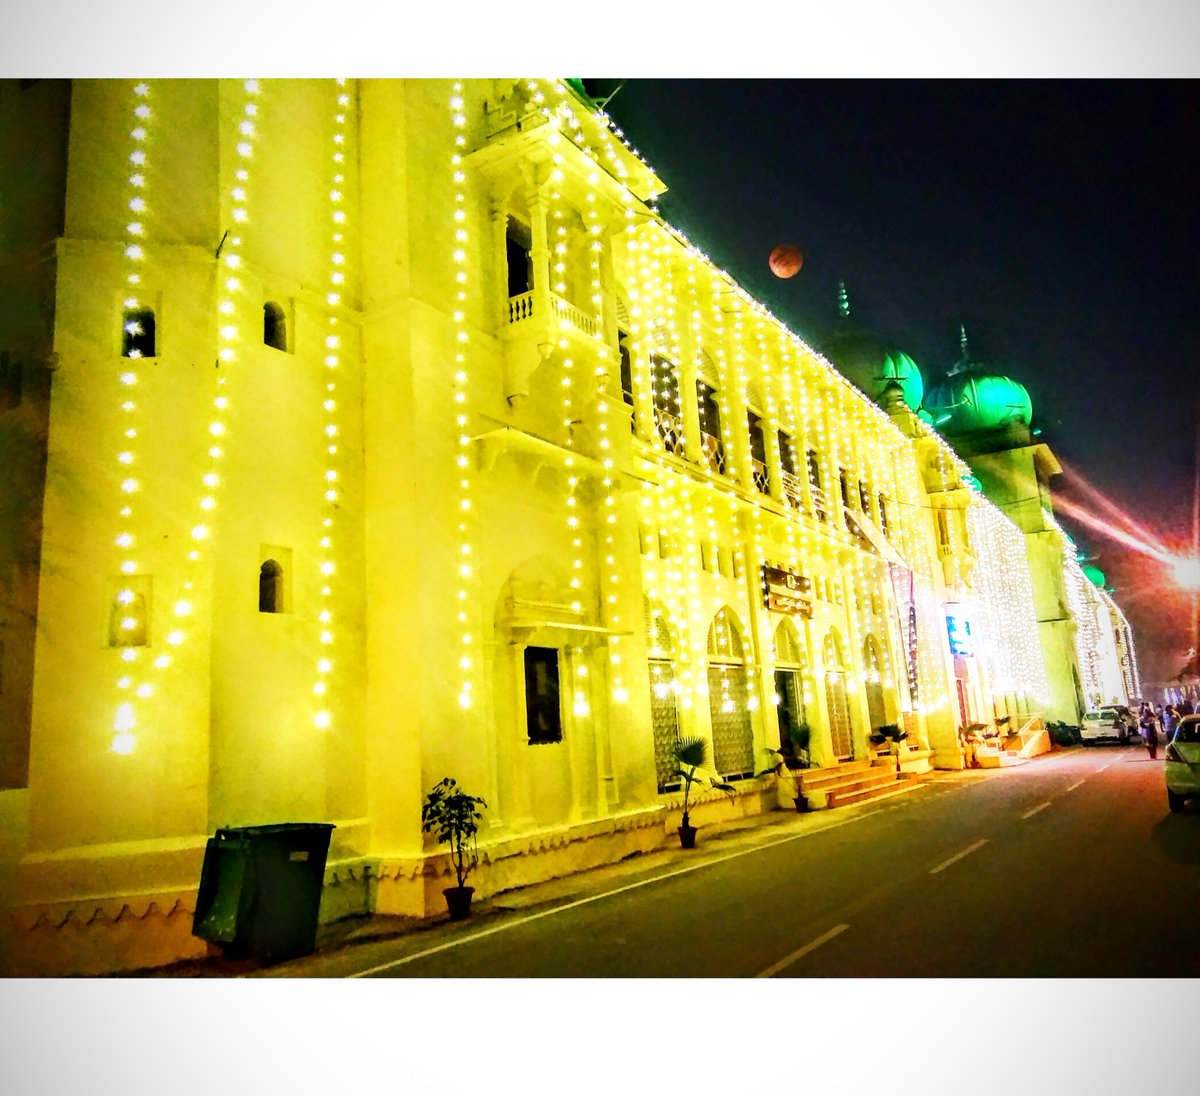 Wonderful sight! Unbelievable click of an Indo-Saracenic style!  #LucknowUniversity  #लखनऊ #LUCentennialCelebration   @lkouniv @profalokkumar  @dswlkouniv  @TOILucknow